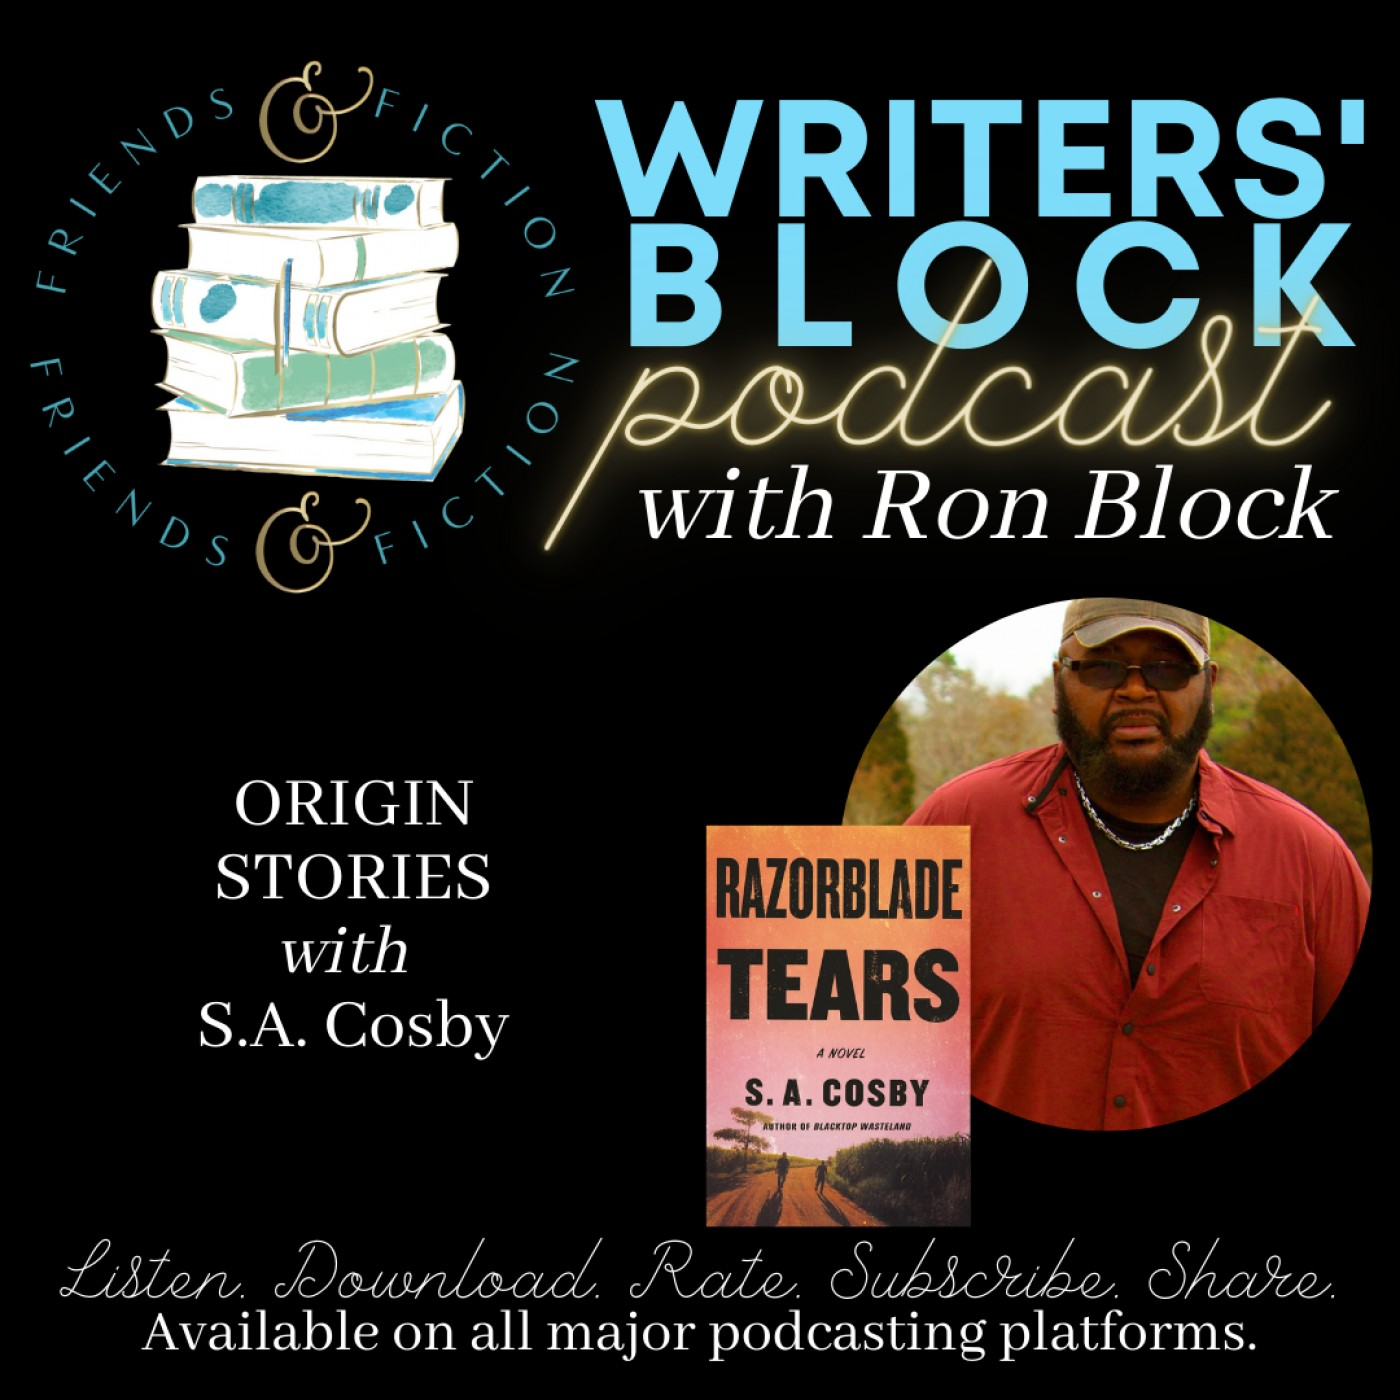 WB S1E13: Ron Block with Kristin Harmel with S.A. Cosby